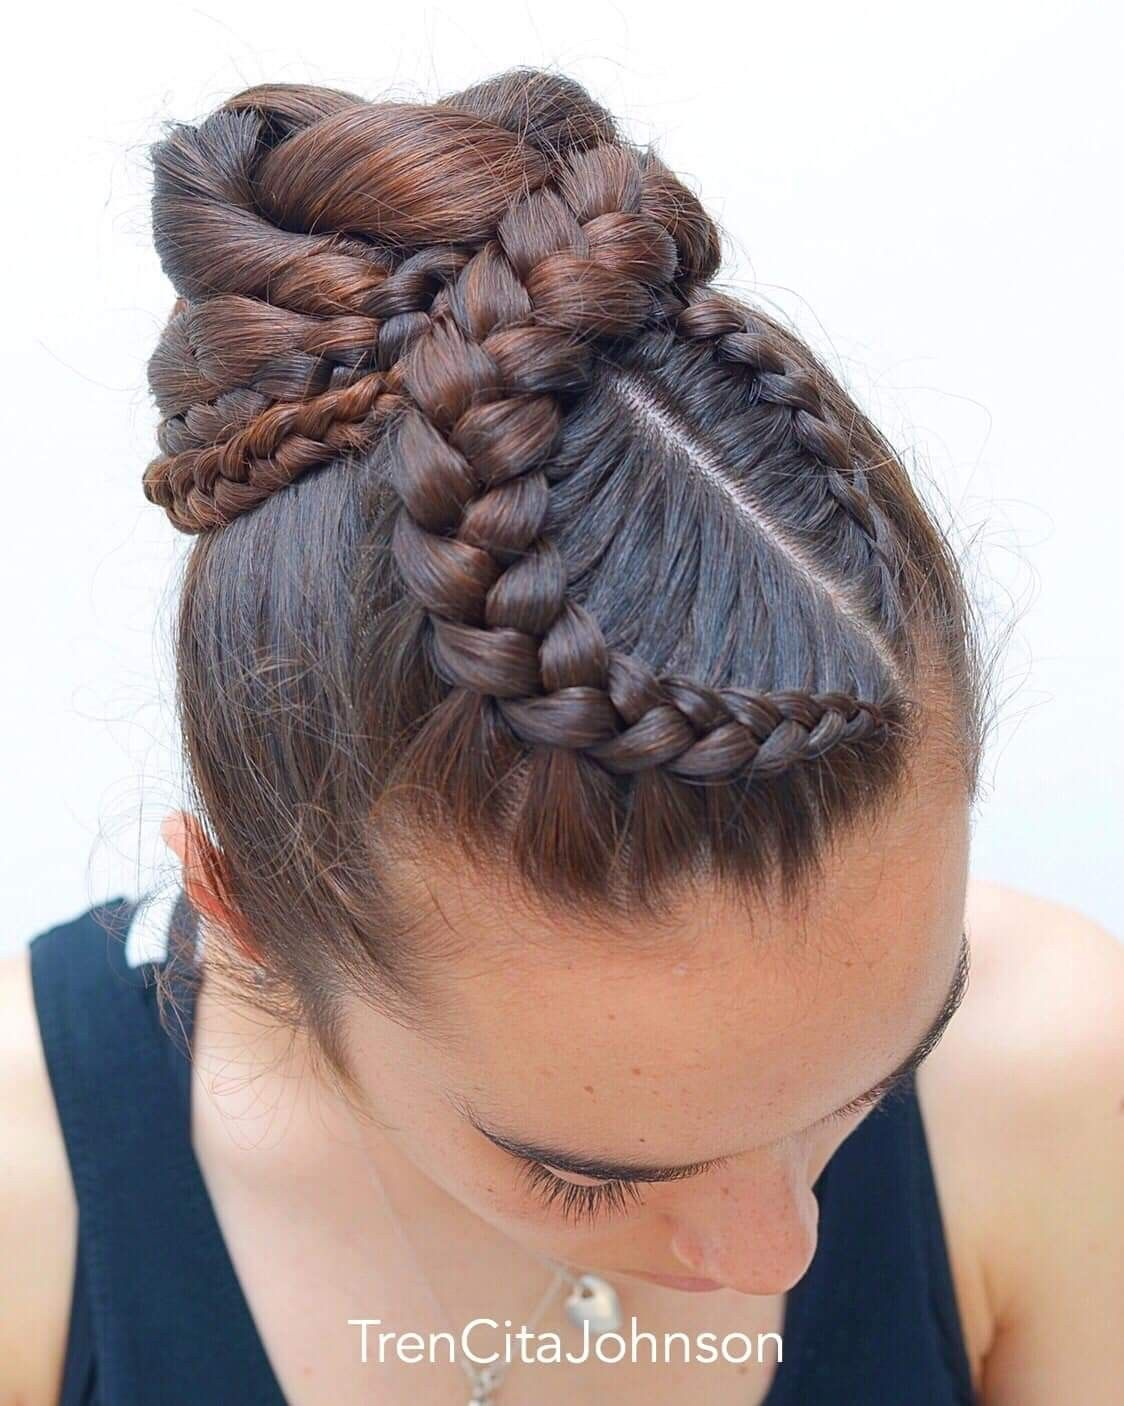 Pin By Jose Piqueras Montalvo On Trenzas In 2020 Hair Styles Womens Hairstyles Braided Hairstyles